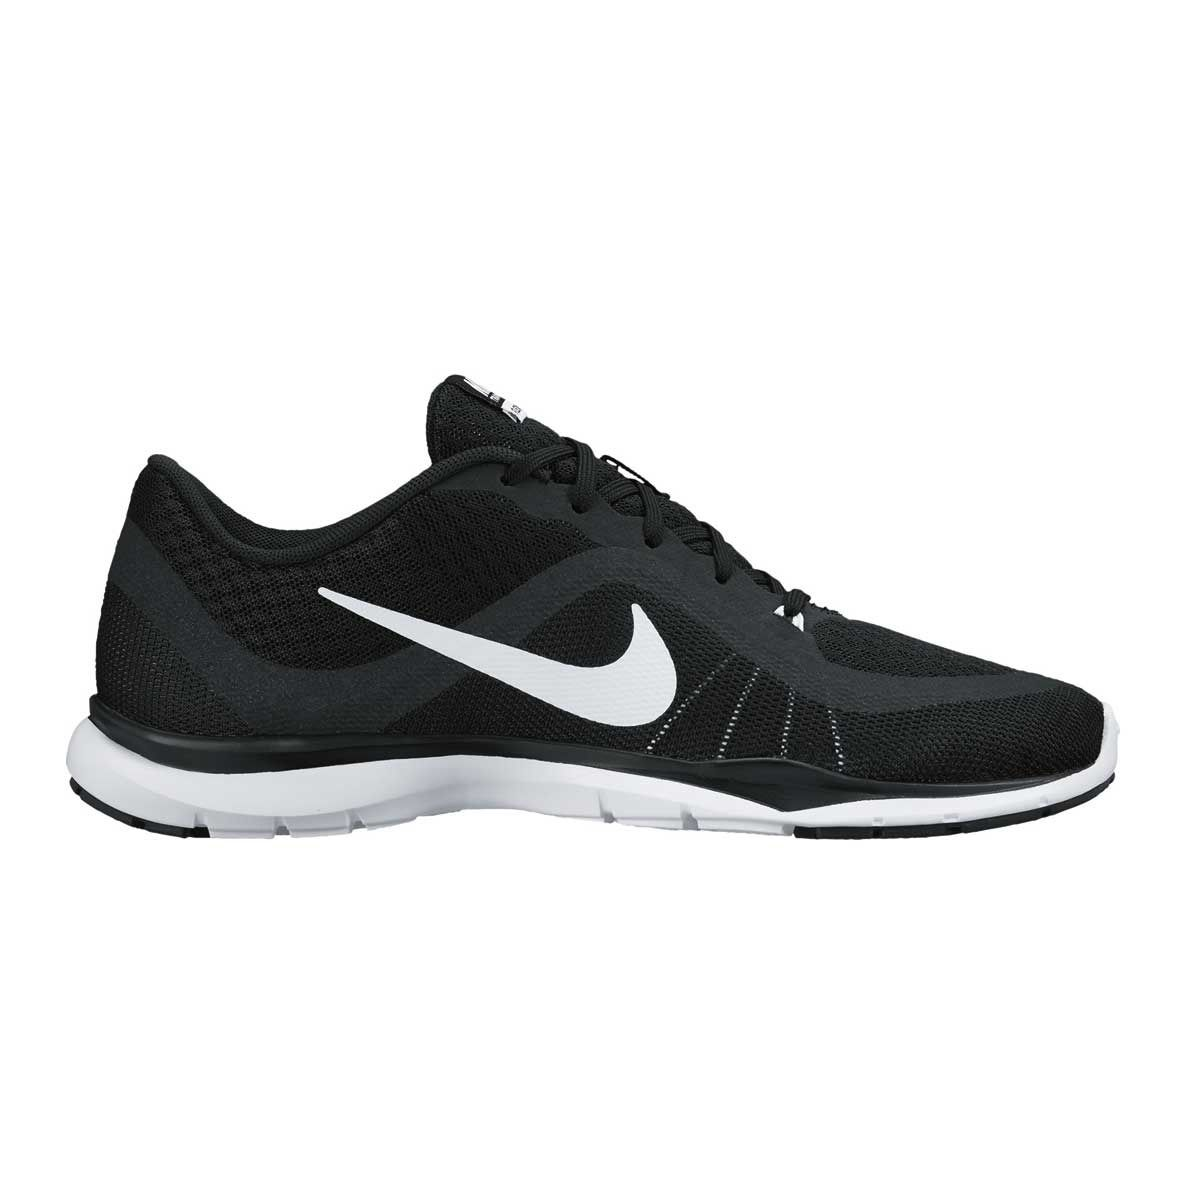 Nike Flex Trainer 6 Women's Training Shoes. Bought these shoes for back to  school.